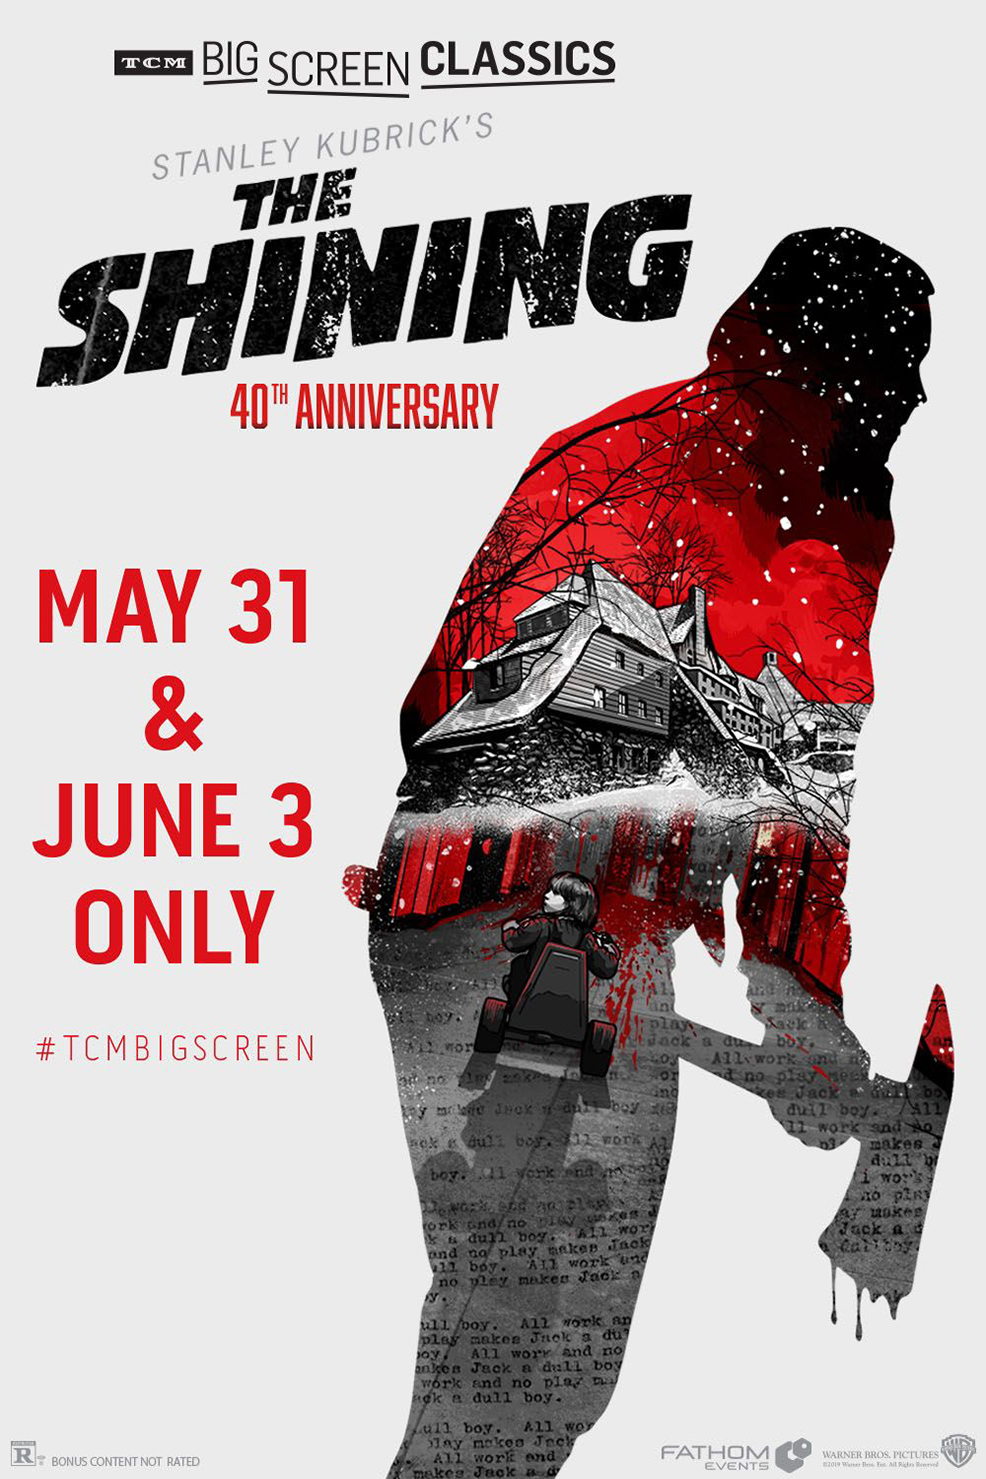 Still of Shining (1980) 40th Anniversary presented by TCM,